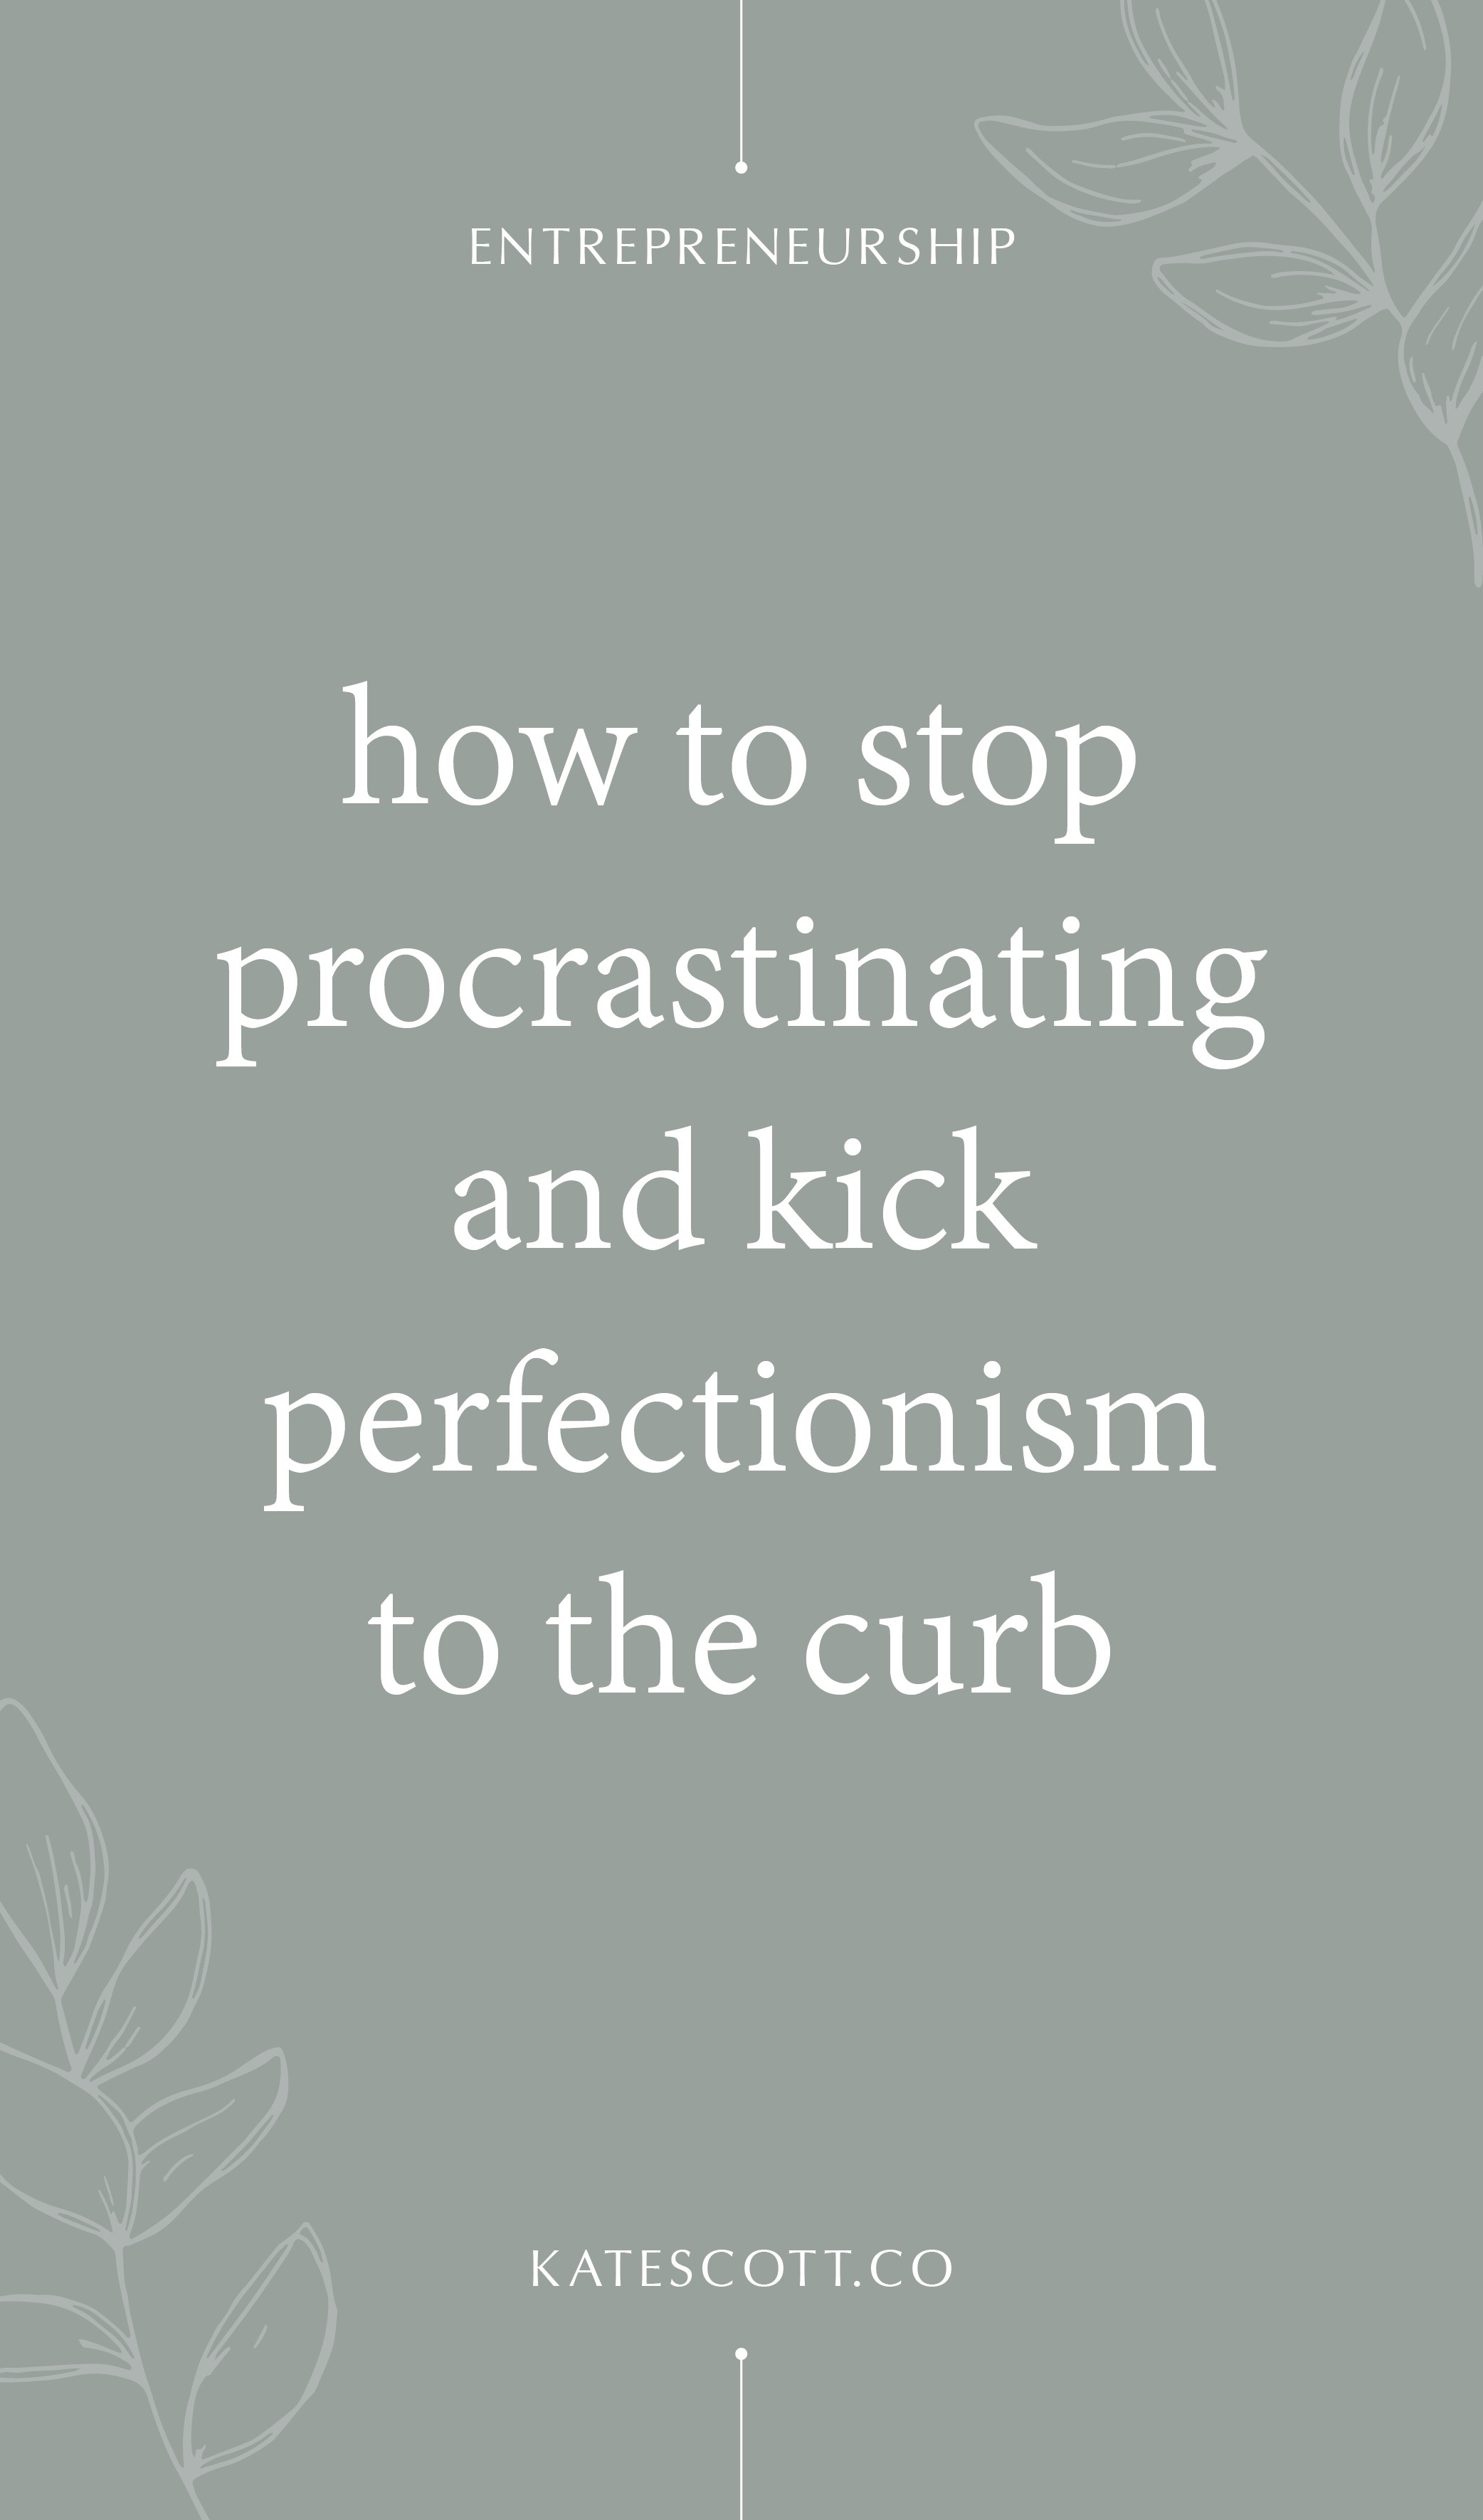 Do you struggle with procrastination and perfectionism? Here's how to stop procrastinating, beat perfectionism, and GET SHIT DONE. | Be More Productive | Perfectionism Overcoming | Productivity Tips | Productivity for Entrepreneurs | Procrastination Tips | How to Overcome Perfectionism | How to Overcome Procrastination | Beat Procrastination #Entrepreneur #Entrepreneurship